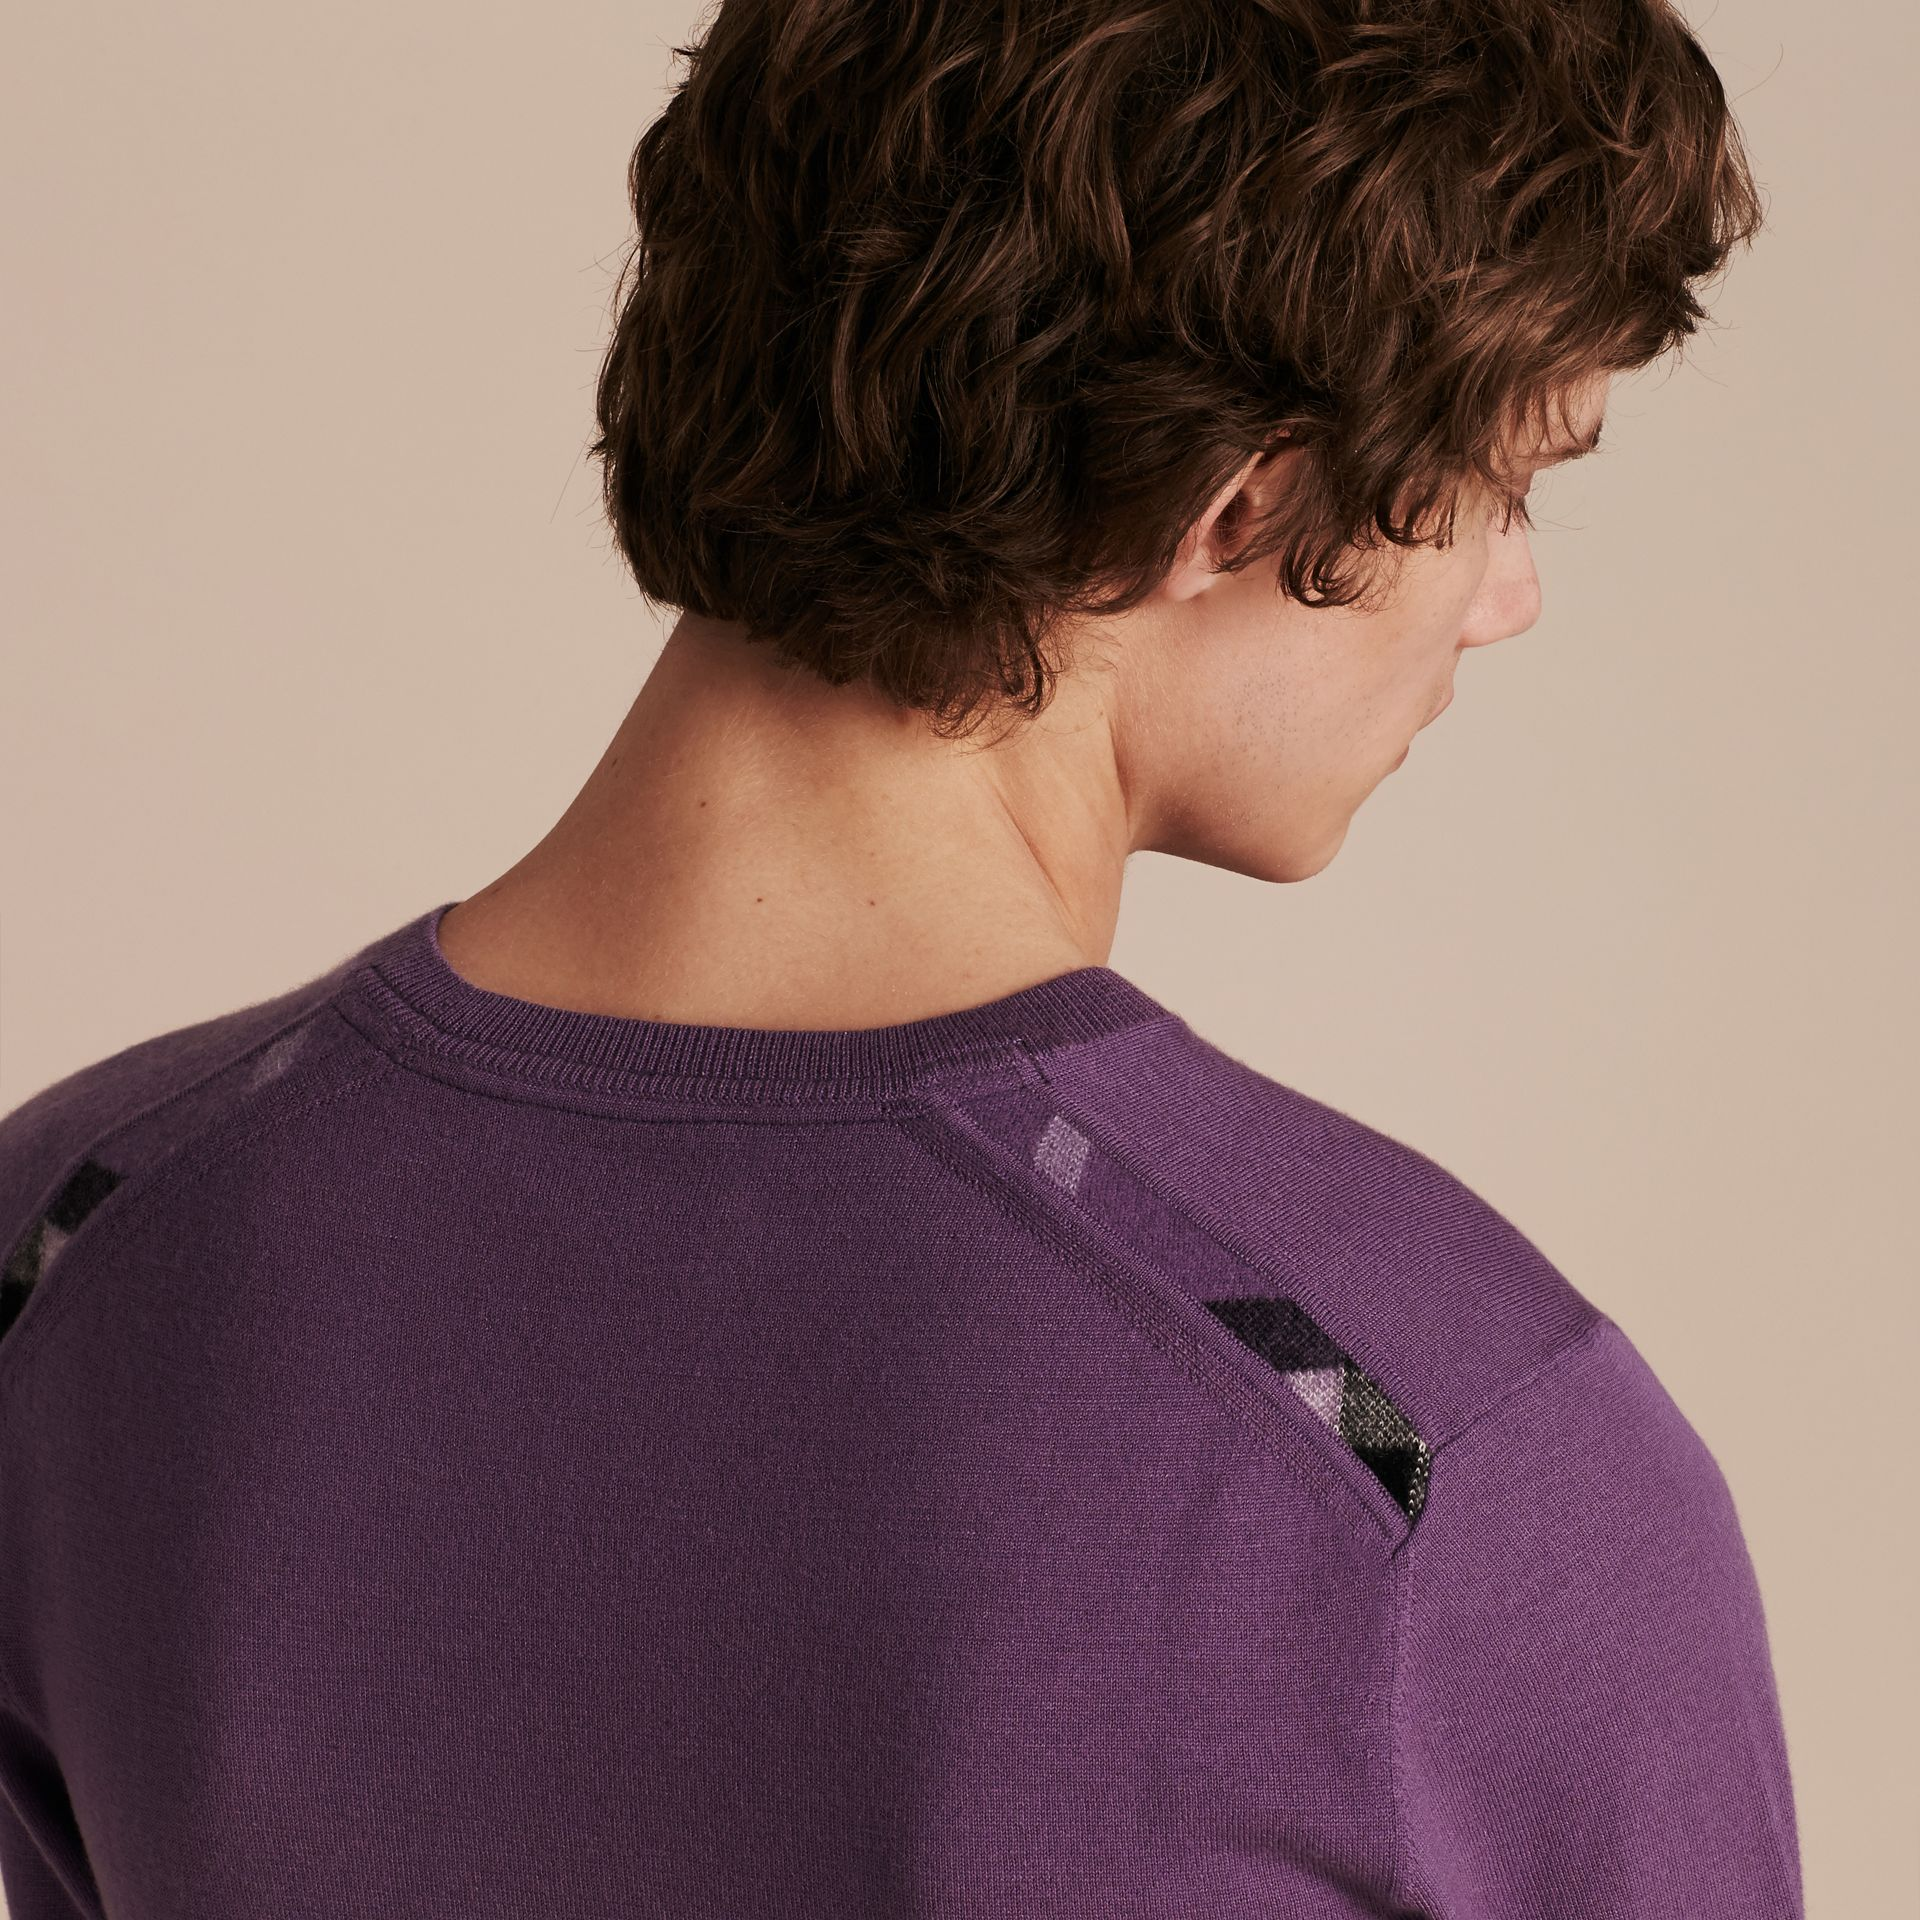 Dusty lilac Lightweight Crew Neck Cashmere Sweater with Check Trim Dusty Lilac - gallery image 5